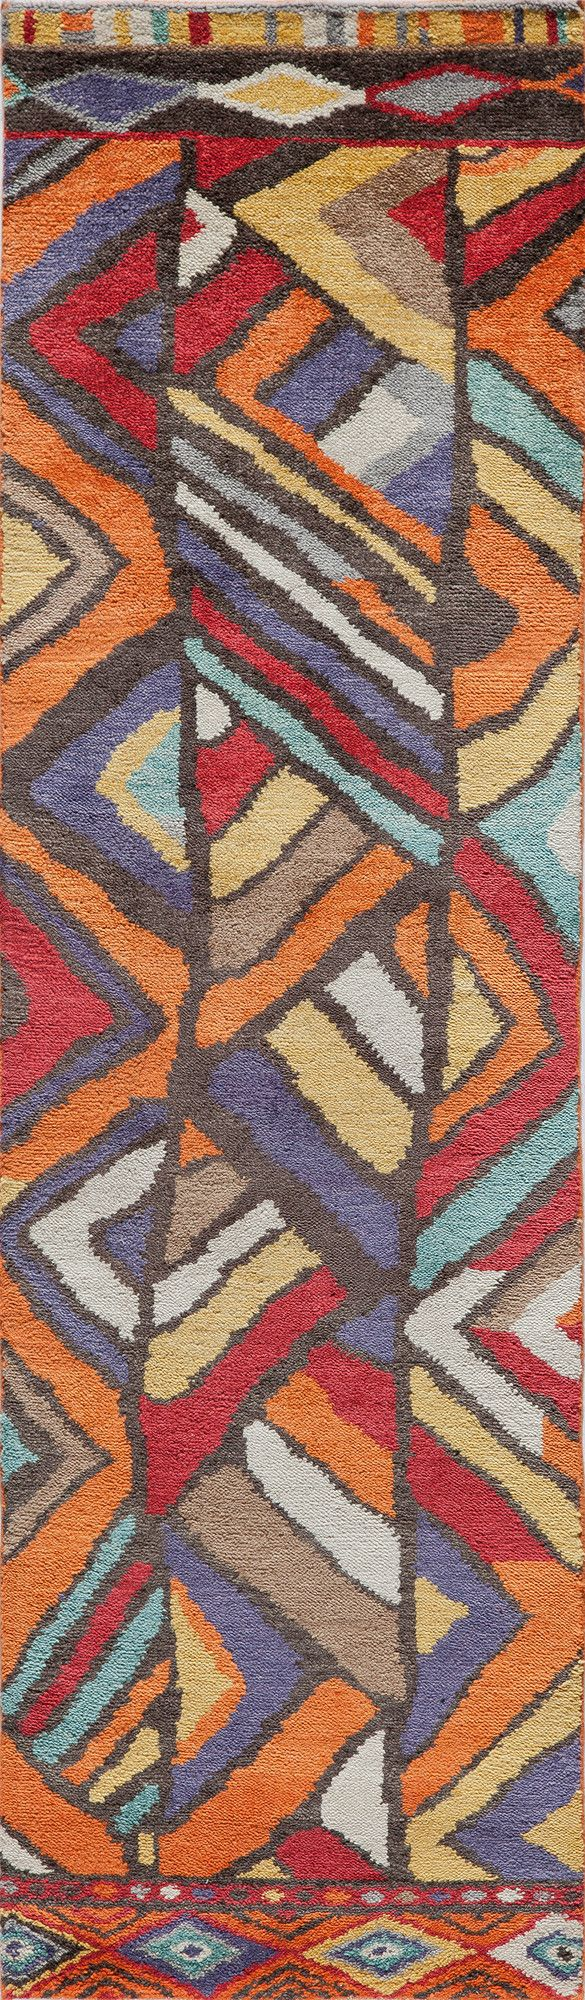 Madagascar Hand-Knotted Rug